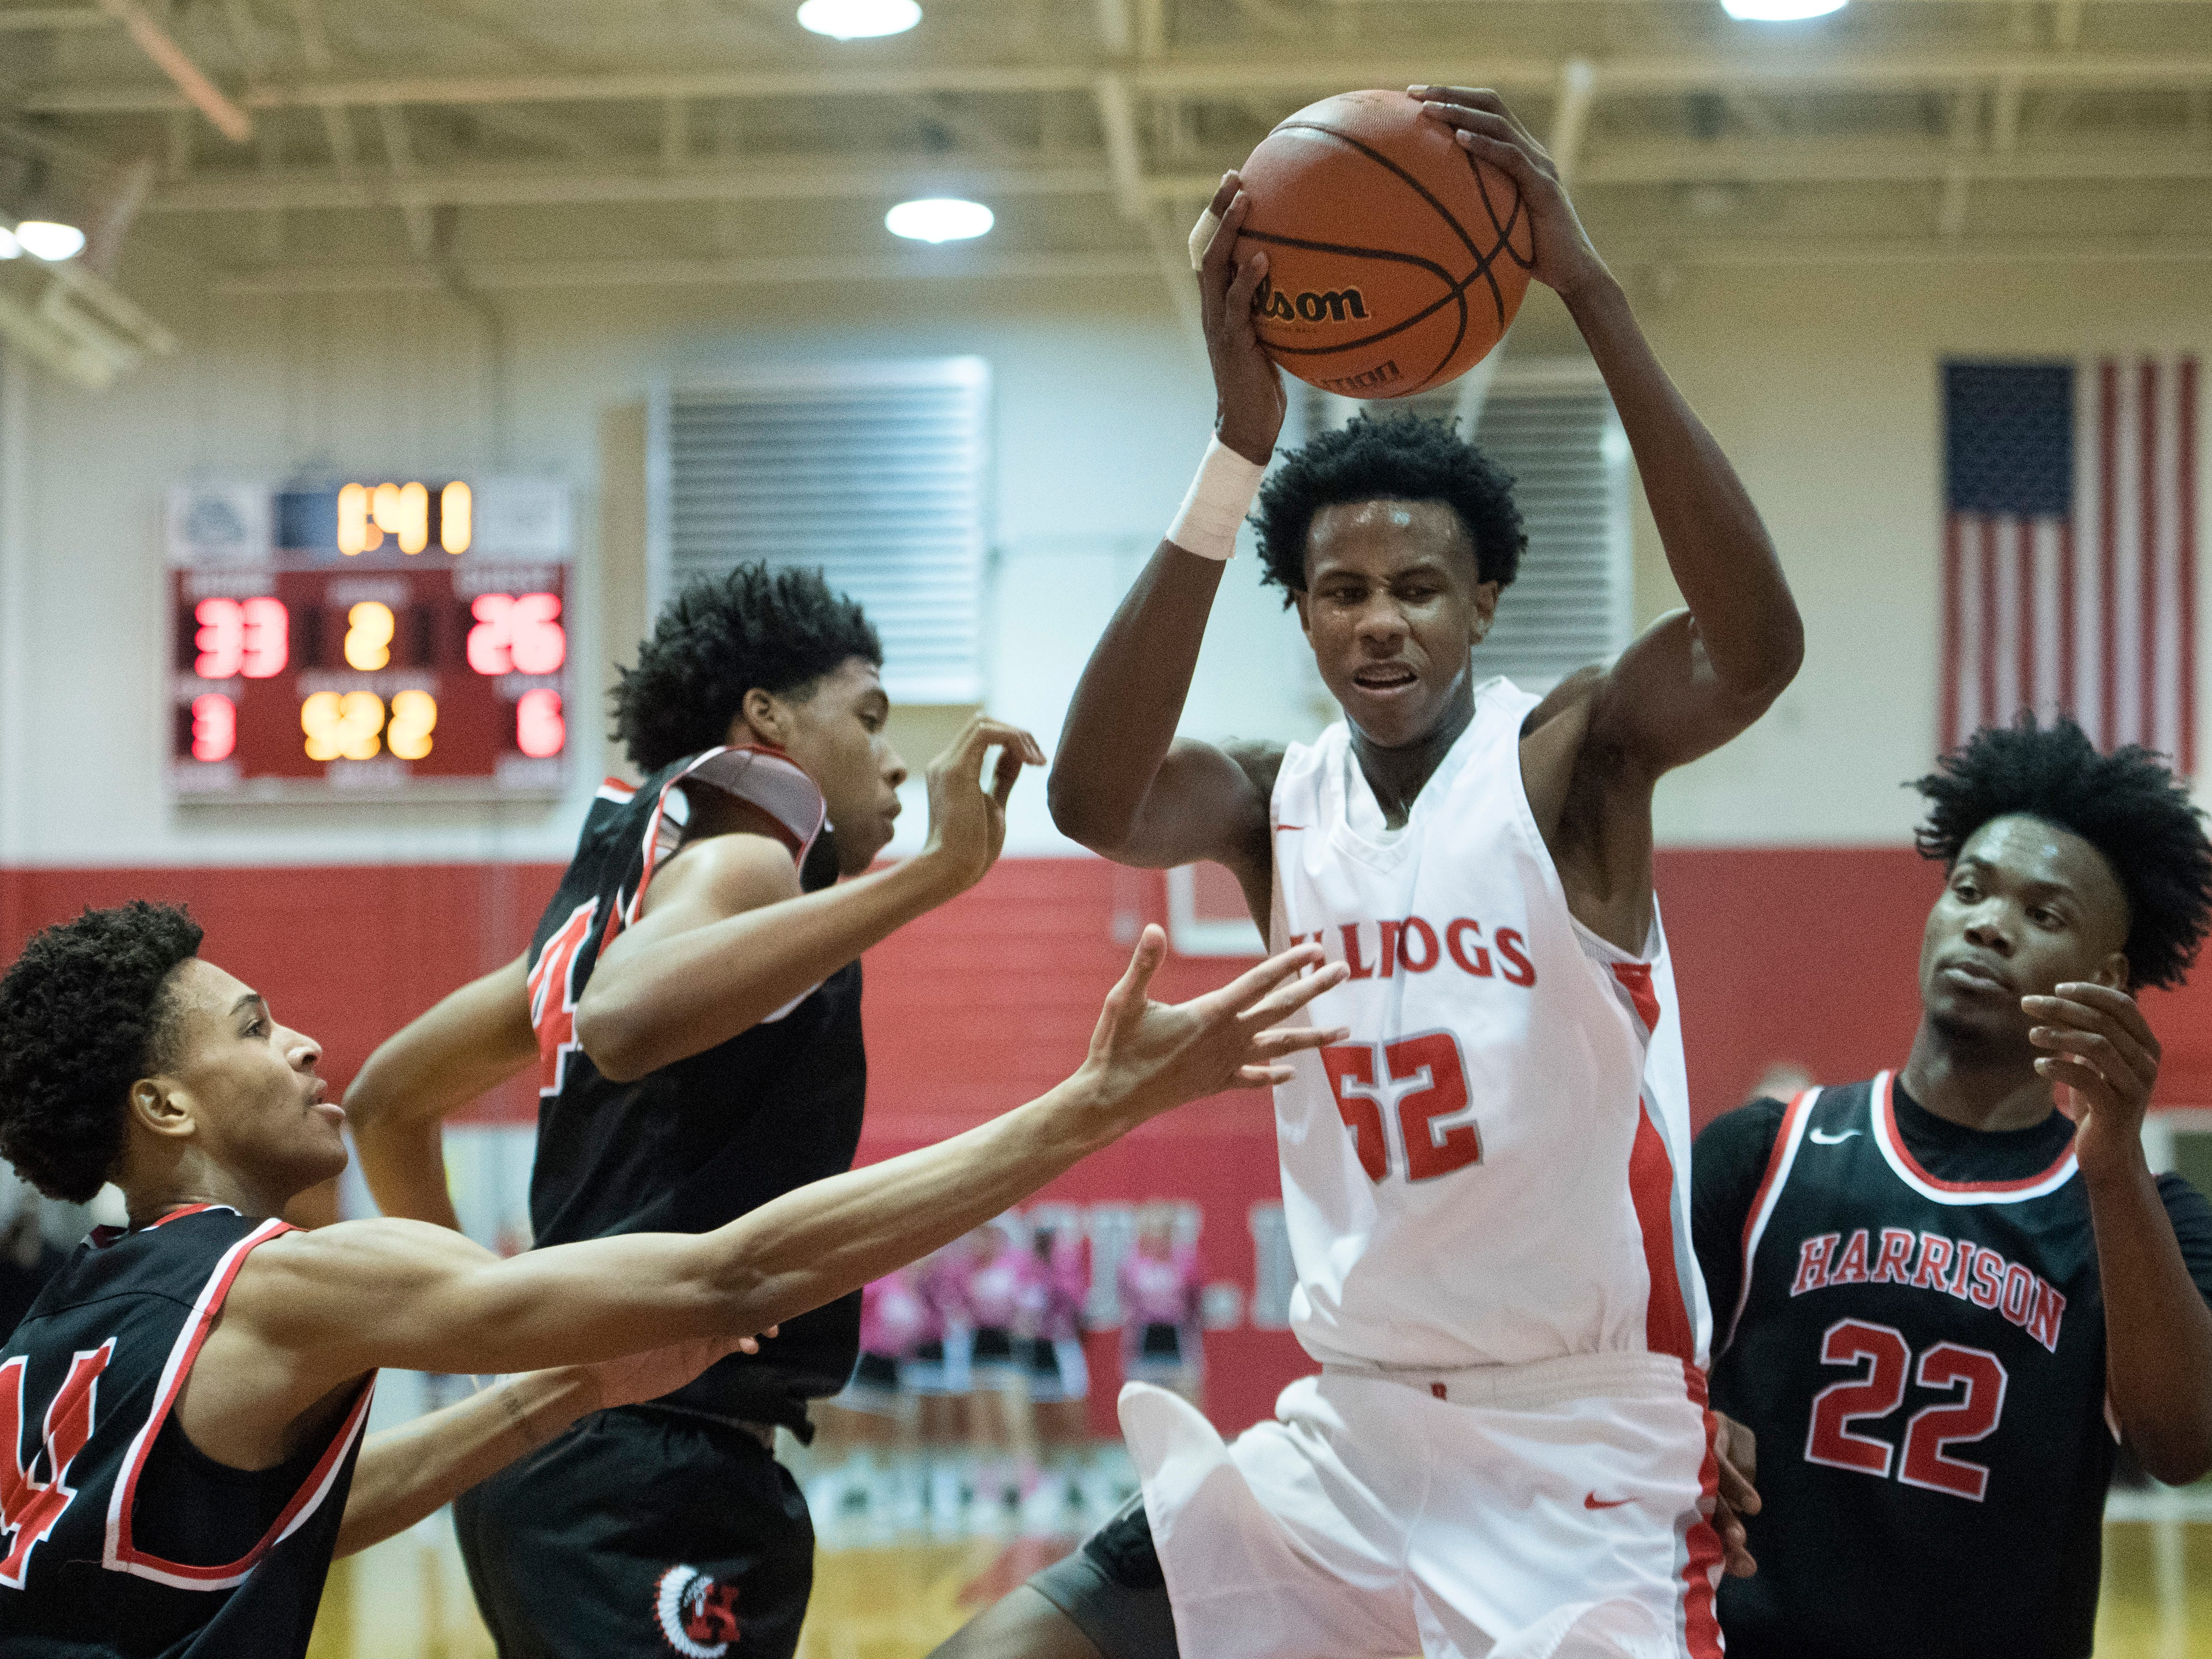 Bosse's Kiyron Powell (52) pulls down a rebound in the first half of the Harrison Warriors vs Bosse Bulldogs game at Bosse High School Tuesday, Feb. 12, 2019.